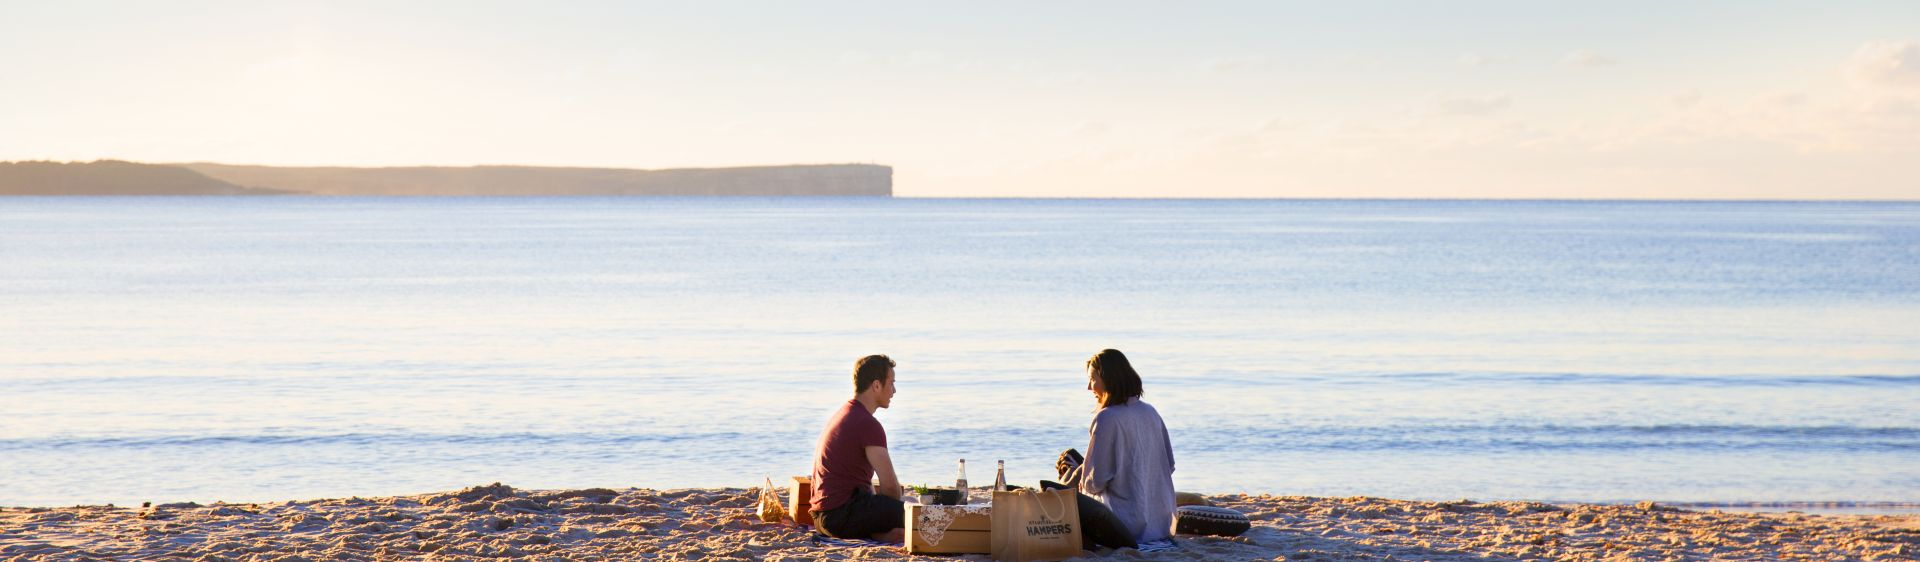 Couple enjoying a picnic at Blenheim Beach in Shoalhaven, NSW South Coast